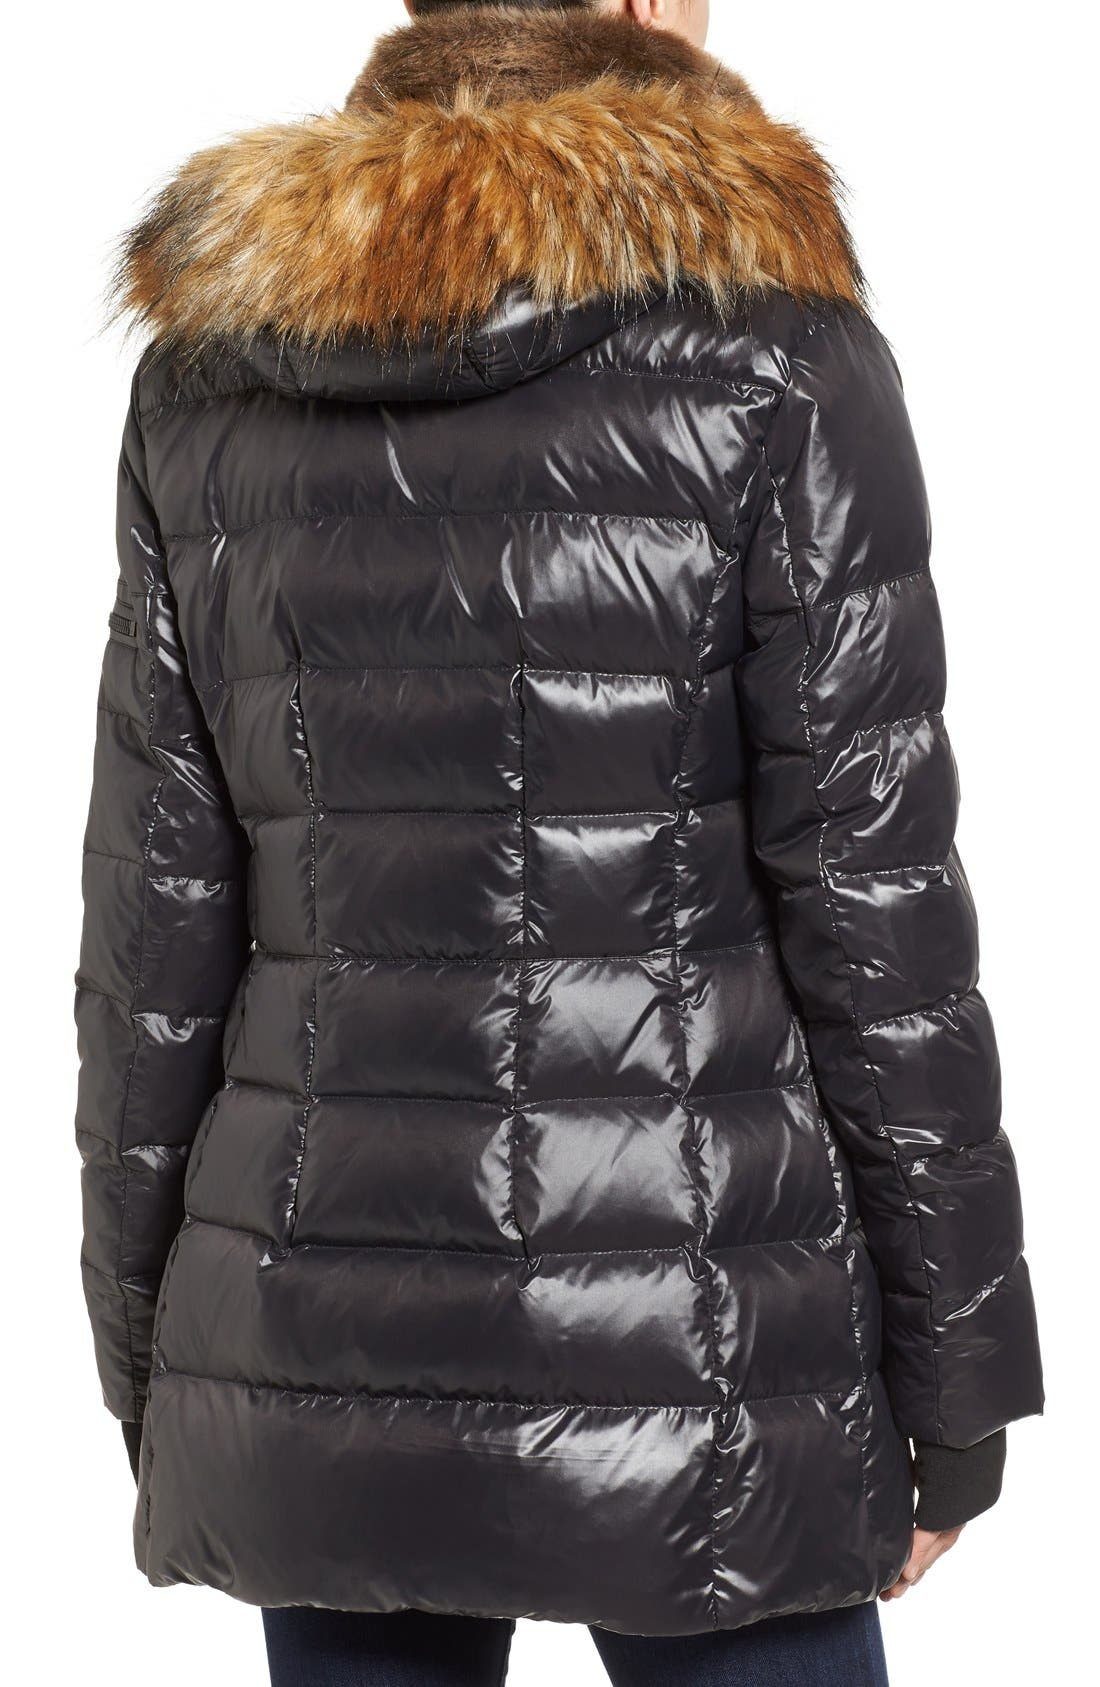 'Chelsea' Gloss Down Jacket with Removable Hood and Faux Fur Trim,                             Alternate thumbnail 3, color,                             002